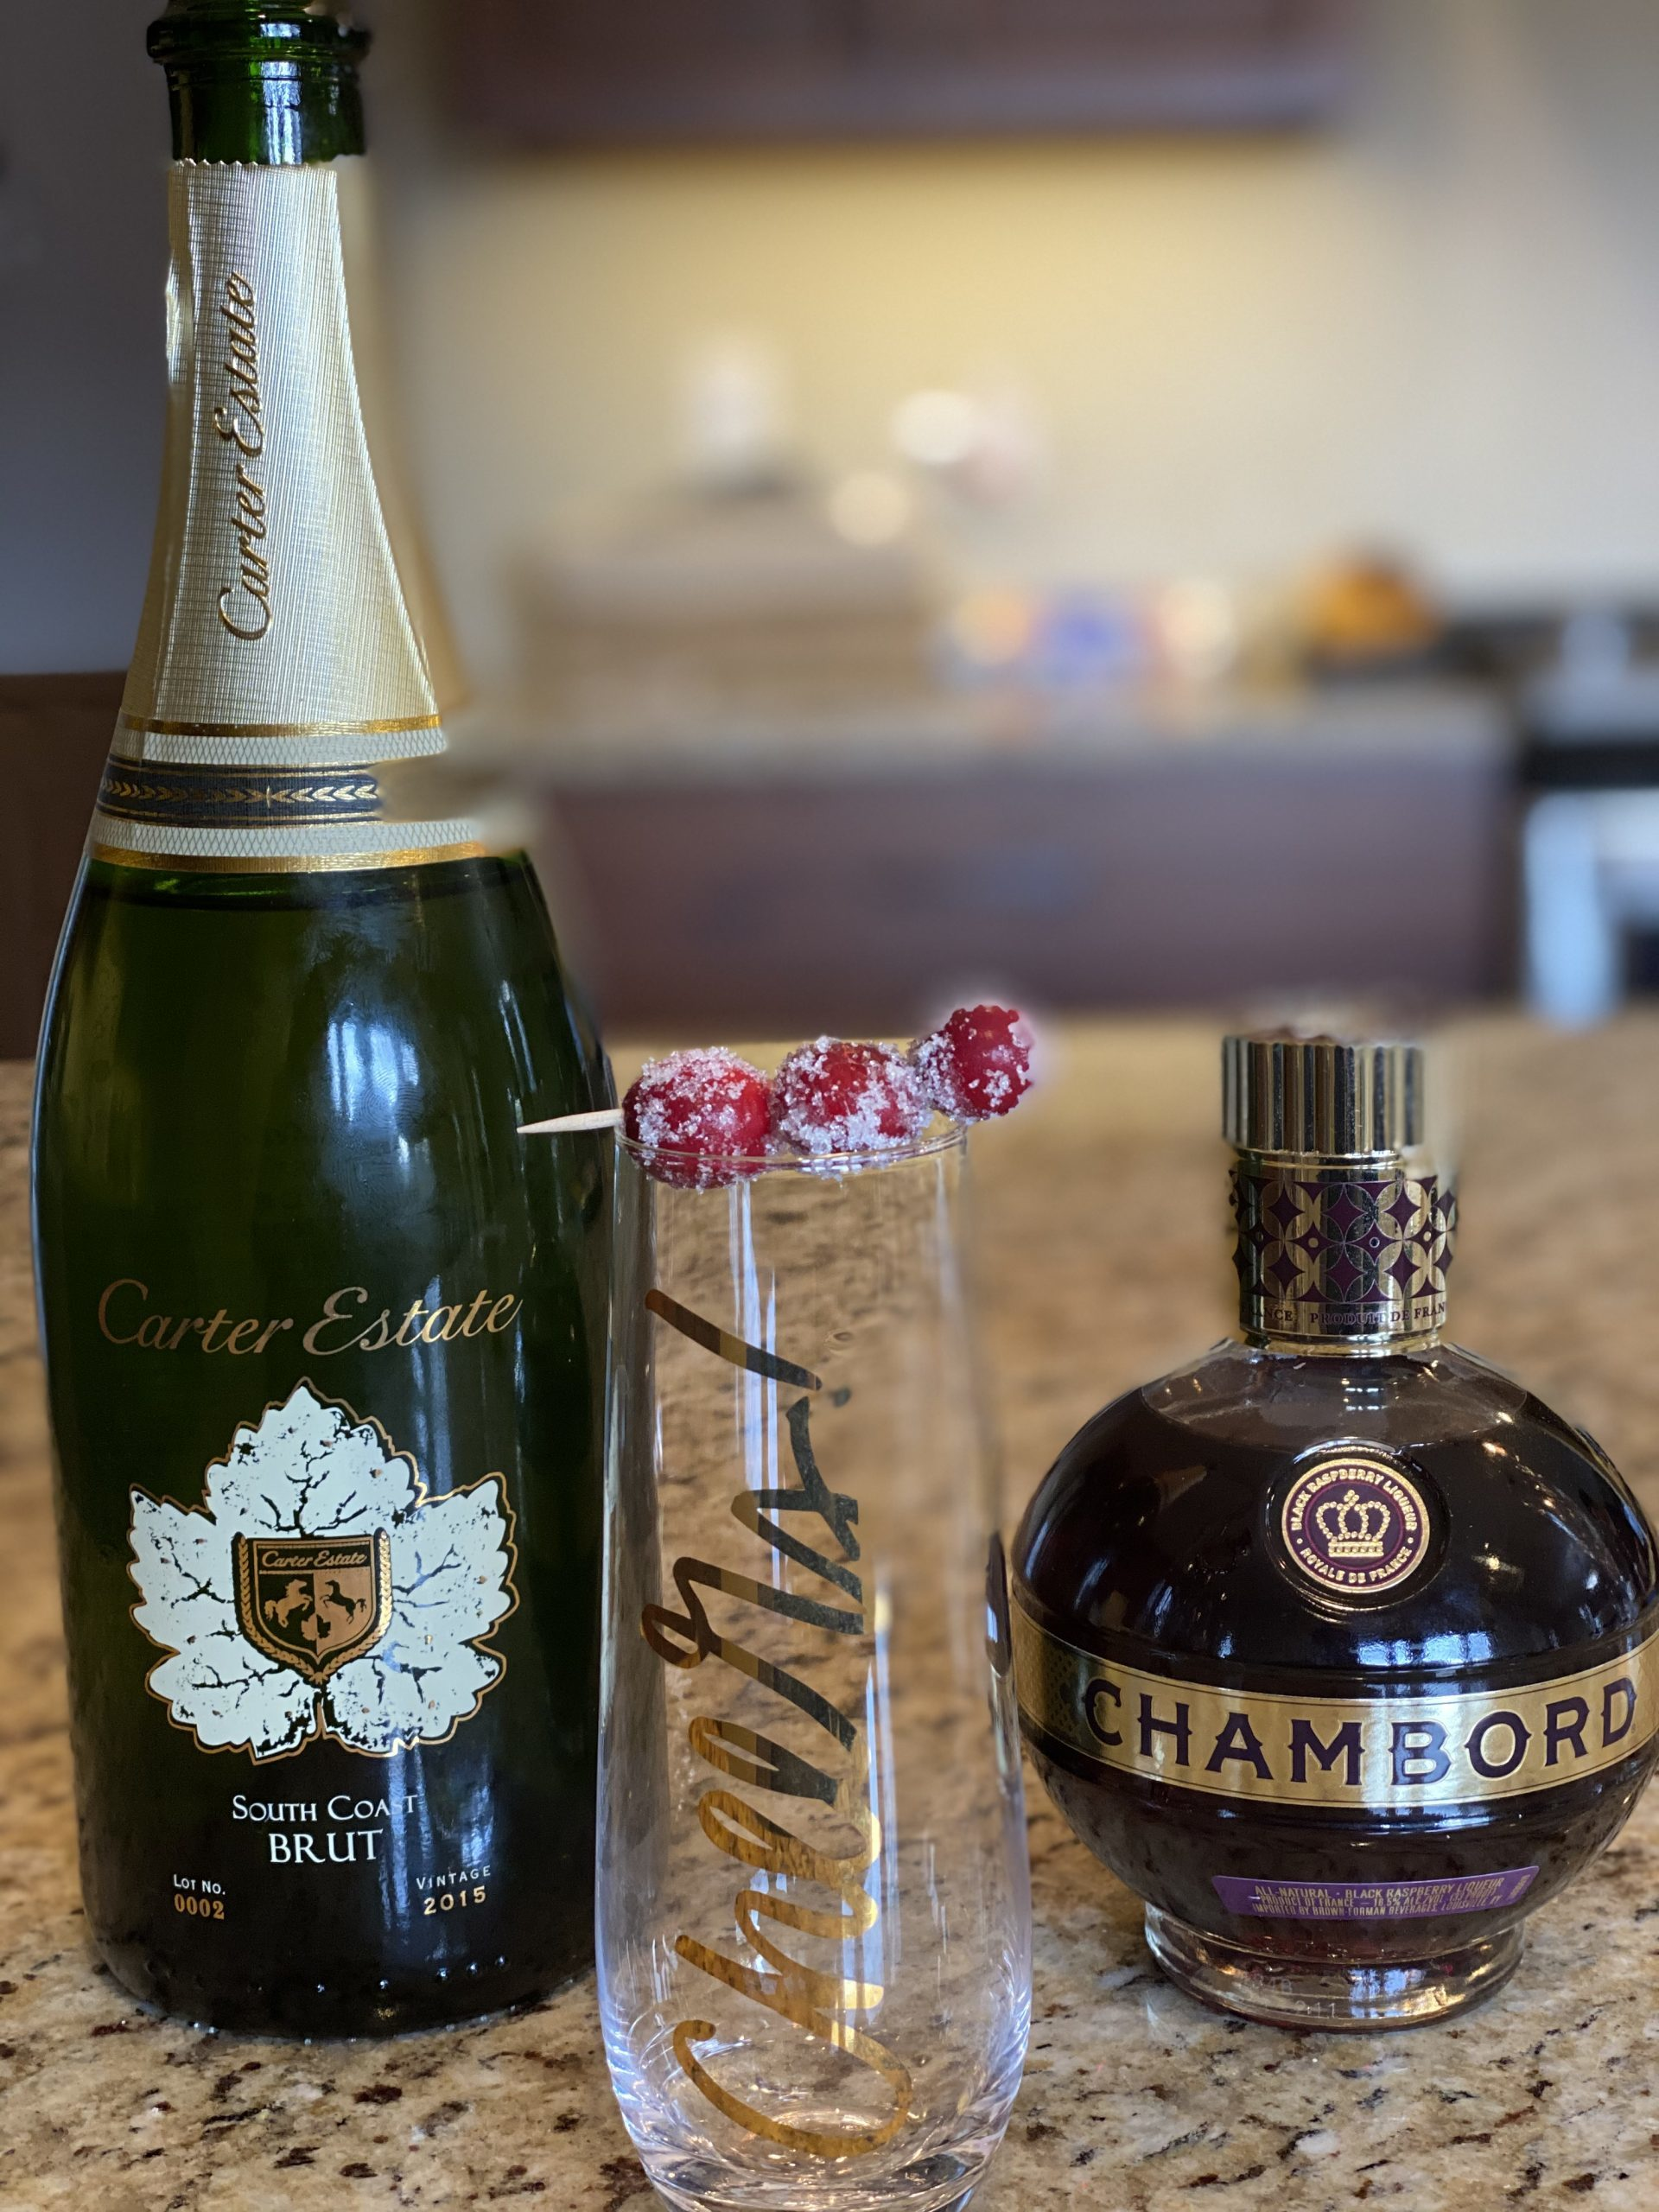 Bubbly cocktail ingredients to pair with loaded tater tots